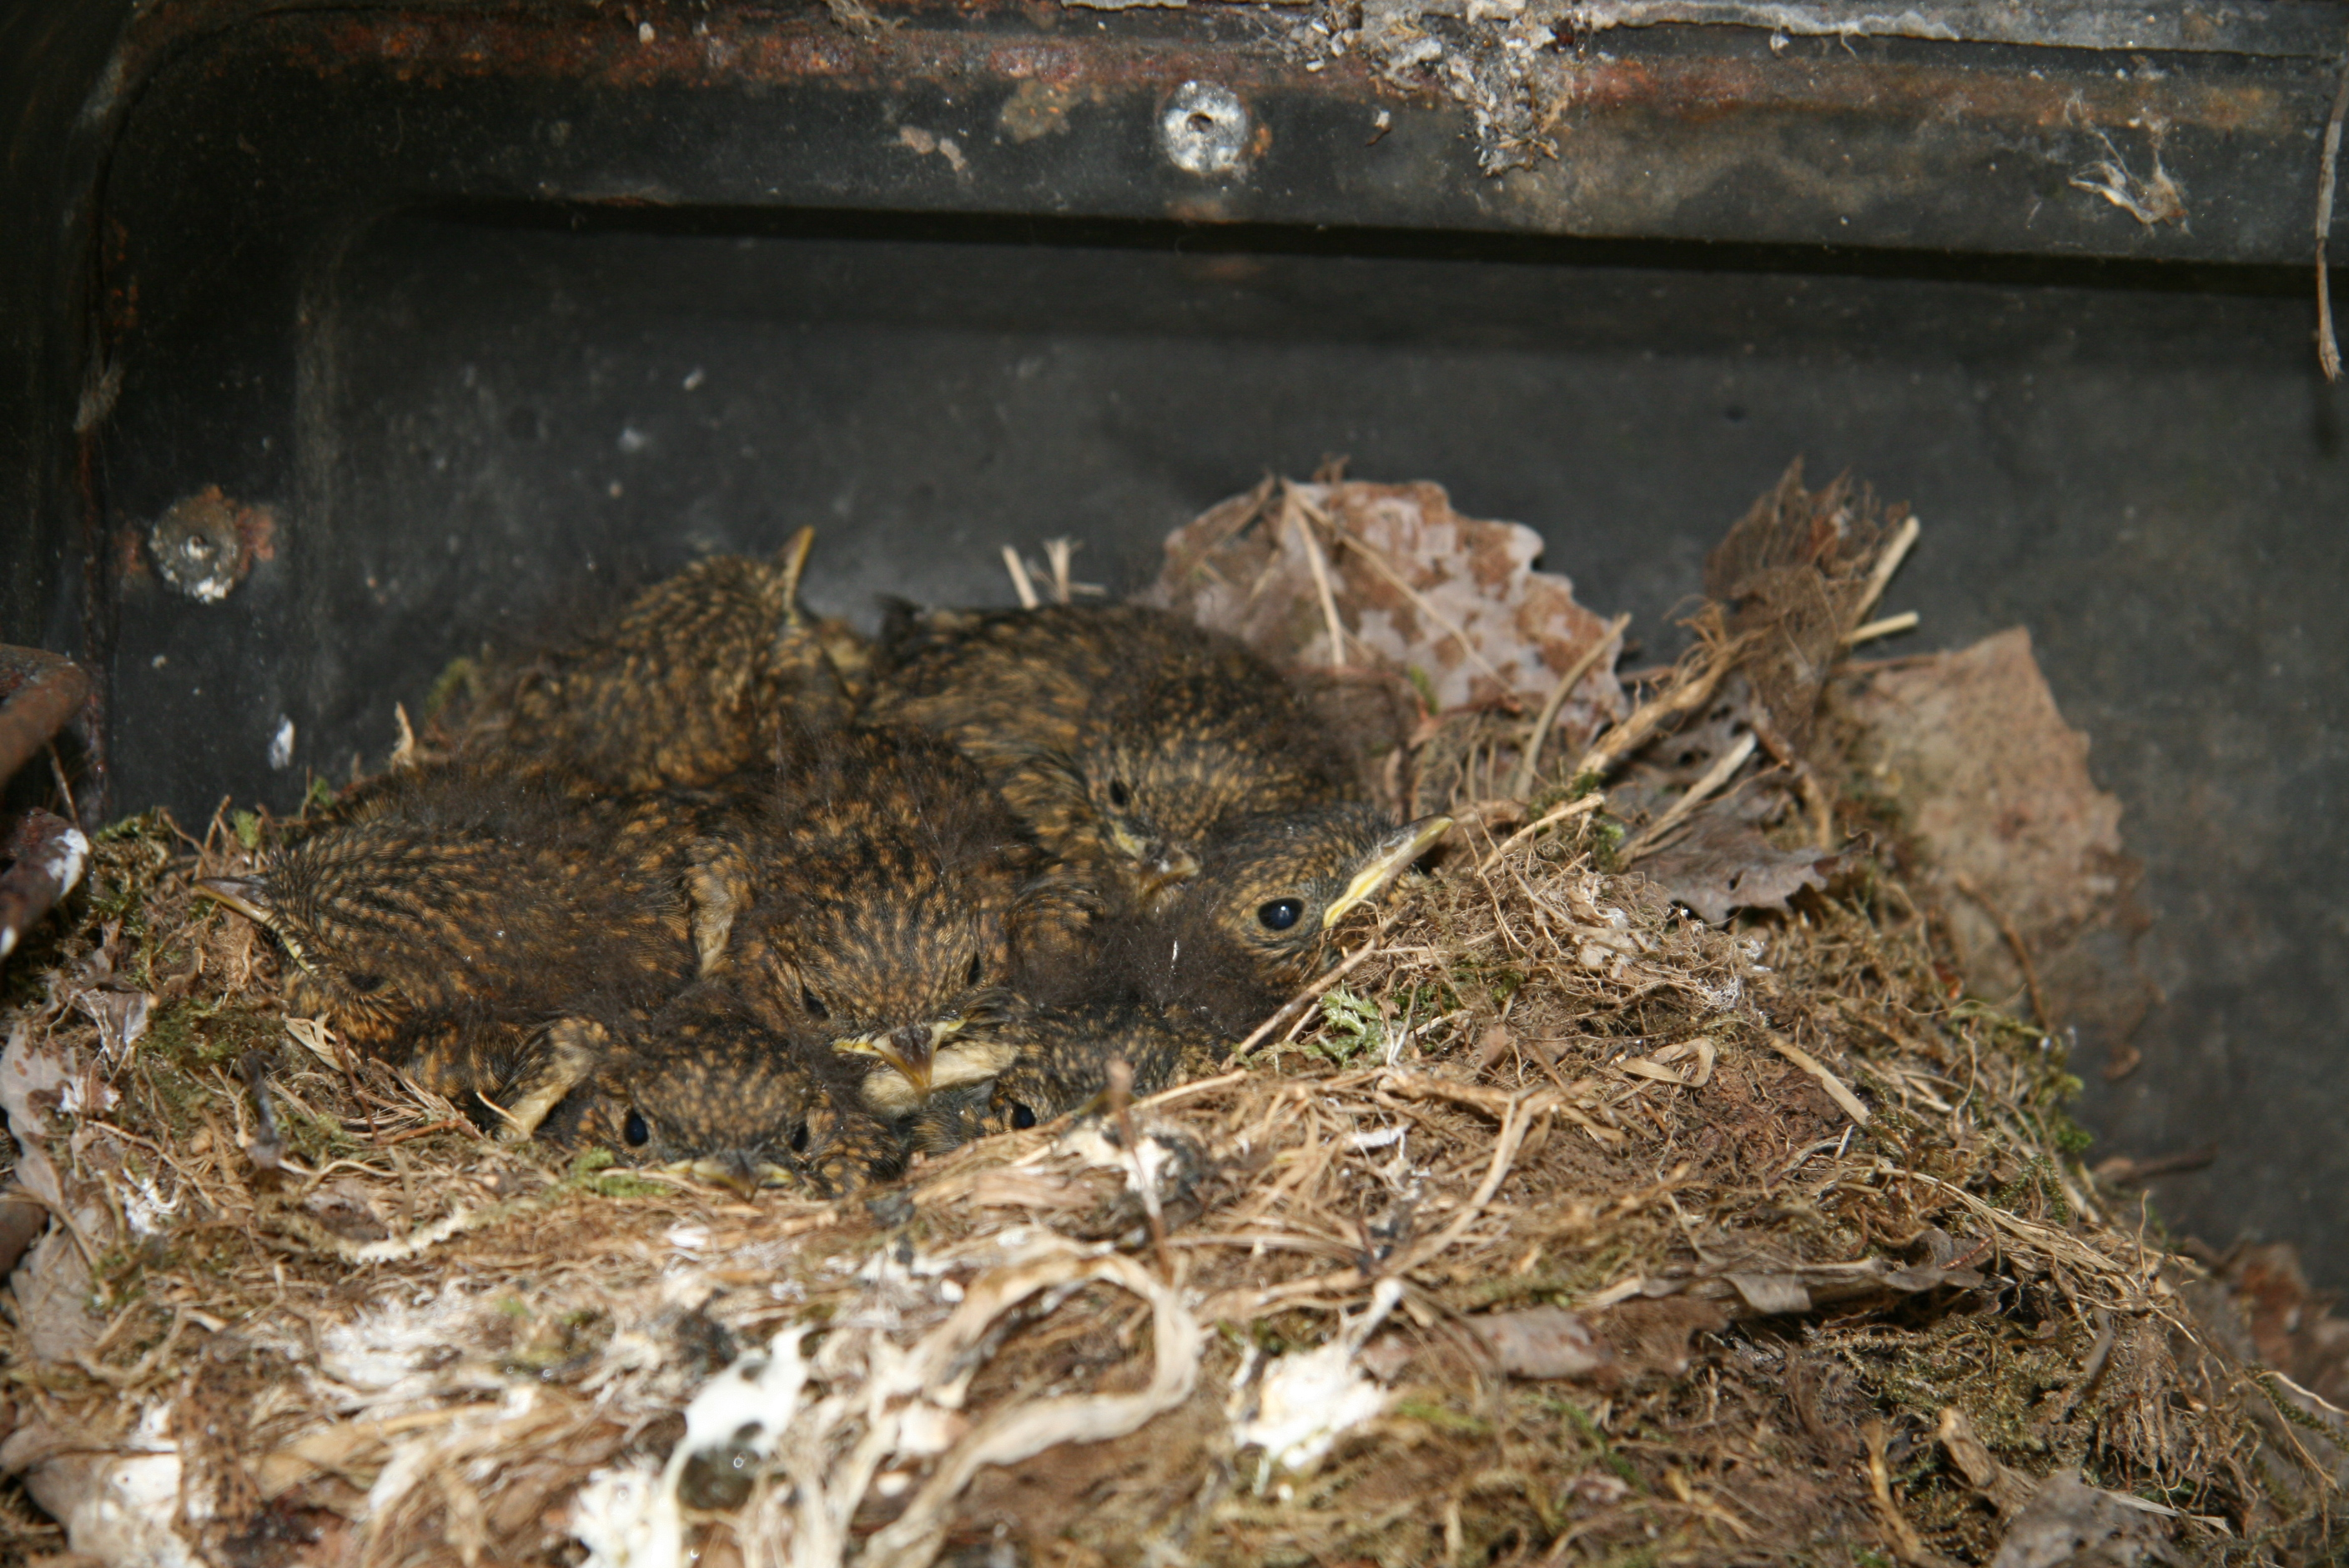 Rotkehlchen-Babies im Nest; By Canonlars (Own work Svenska: min egen bild) [CC0], via Wikimedia Commons